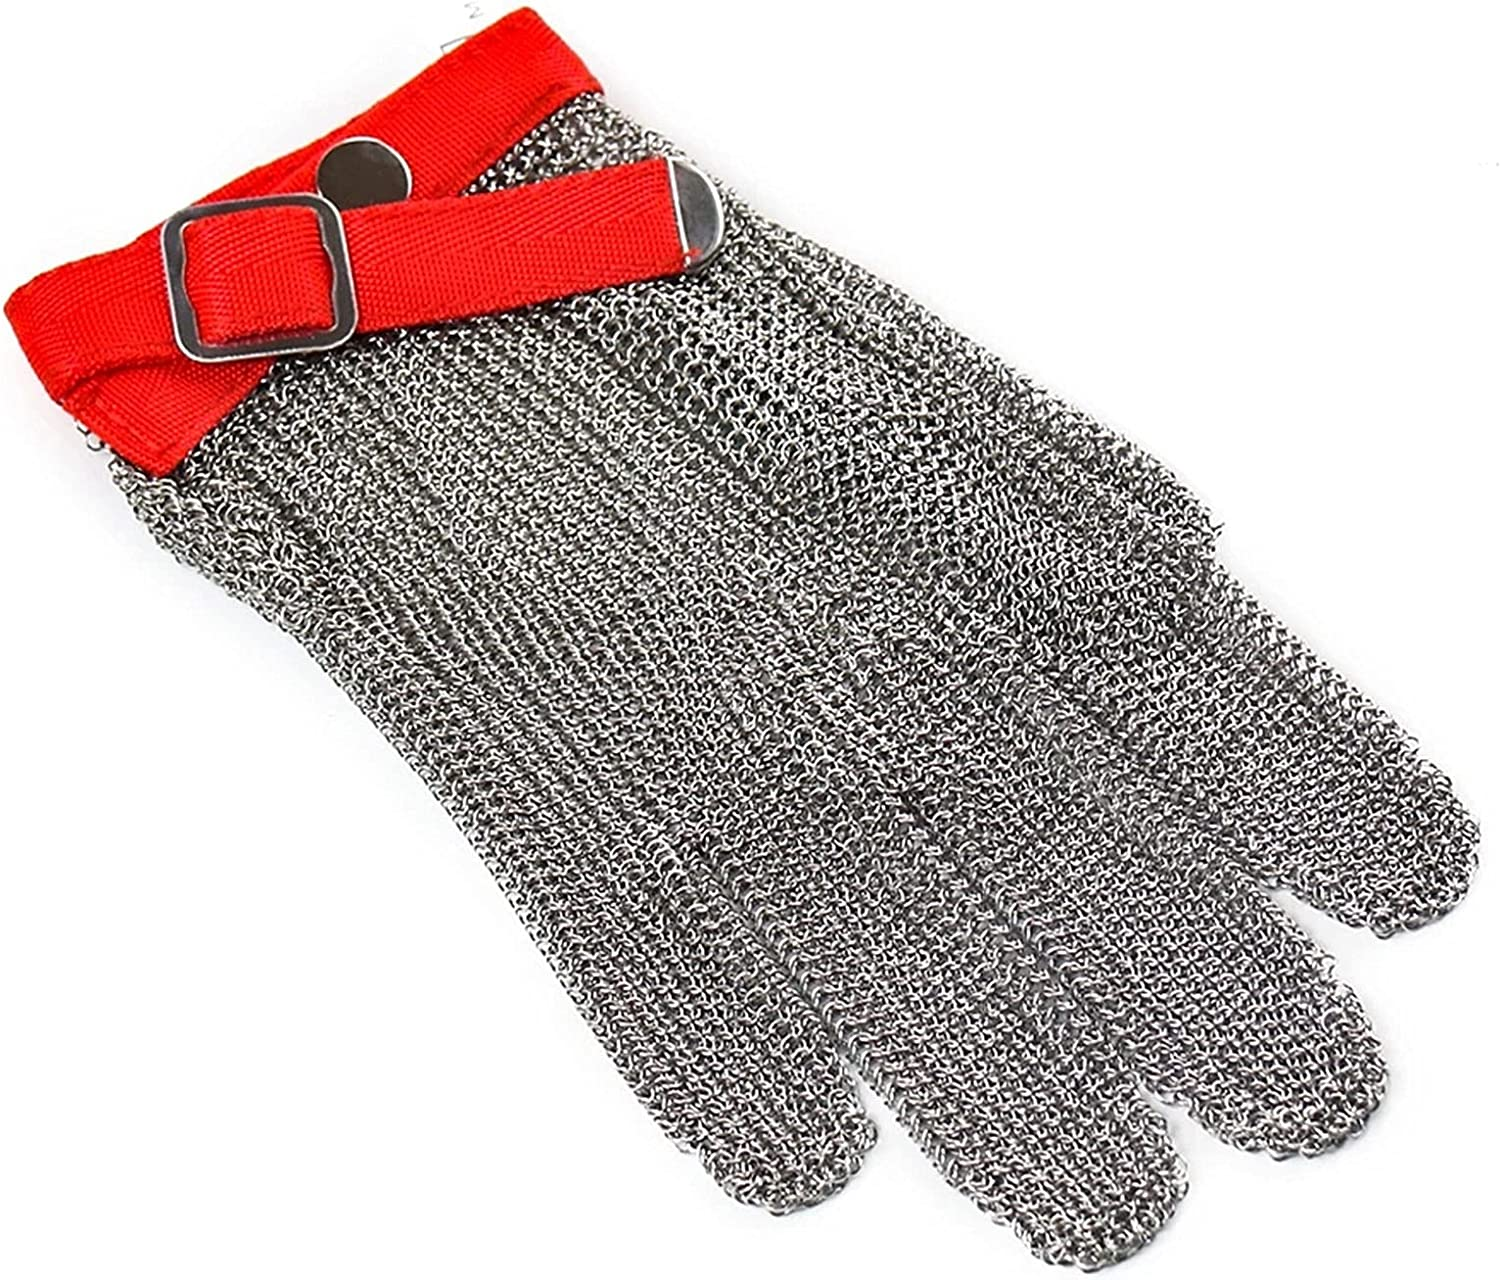 Steel Wire Gloves Chef m free shipping Resistant Credence Cut